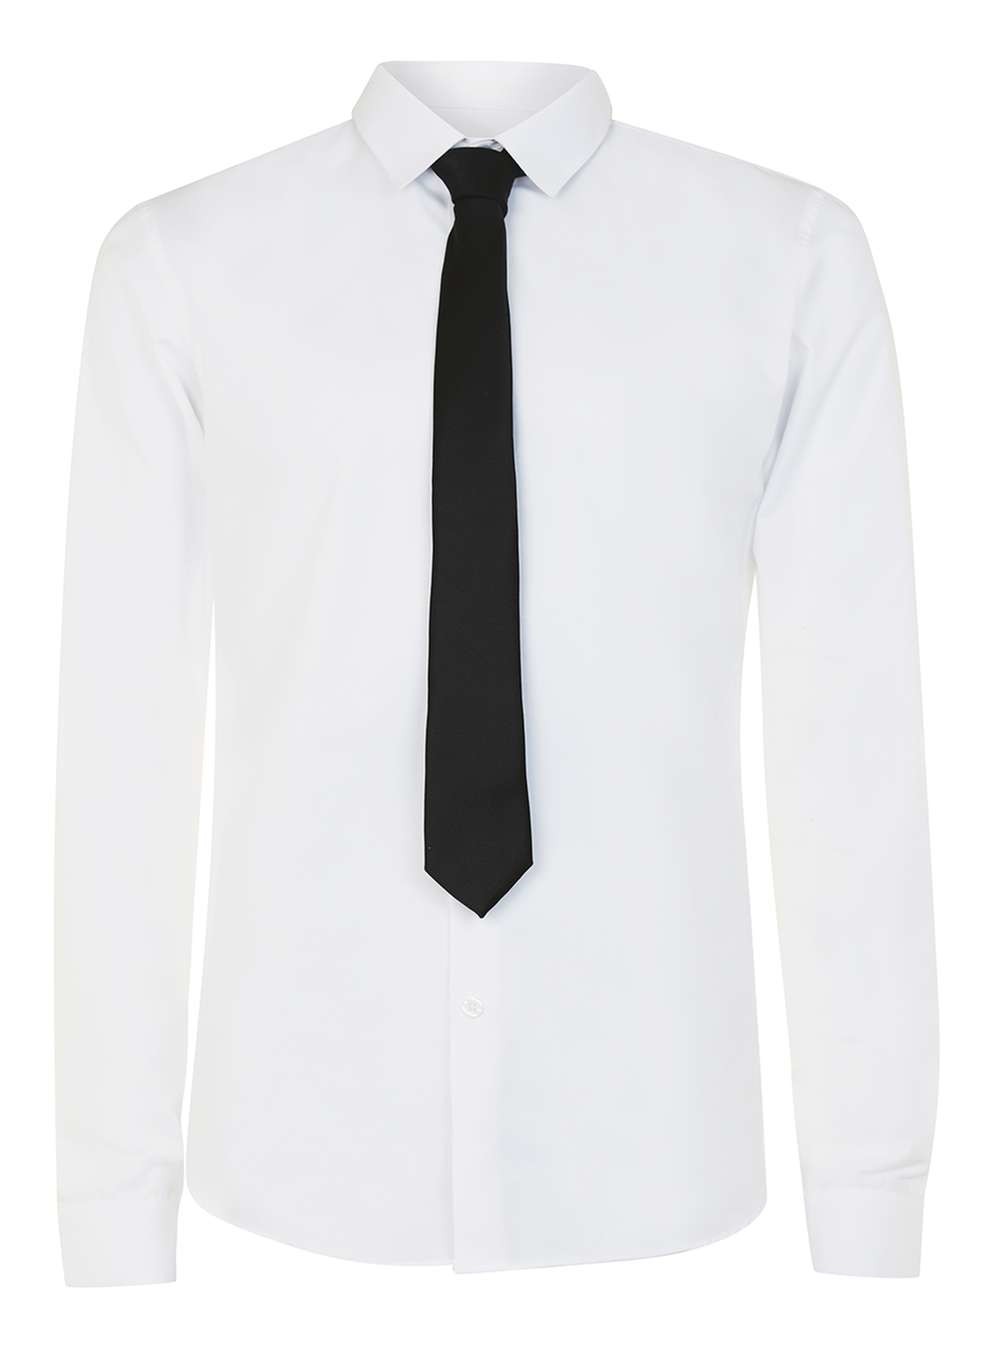 Topman White Dress Shirt And Black Tie Set In Black For